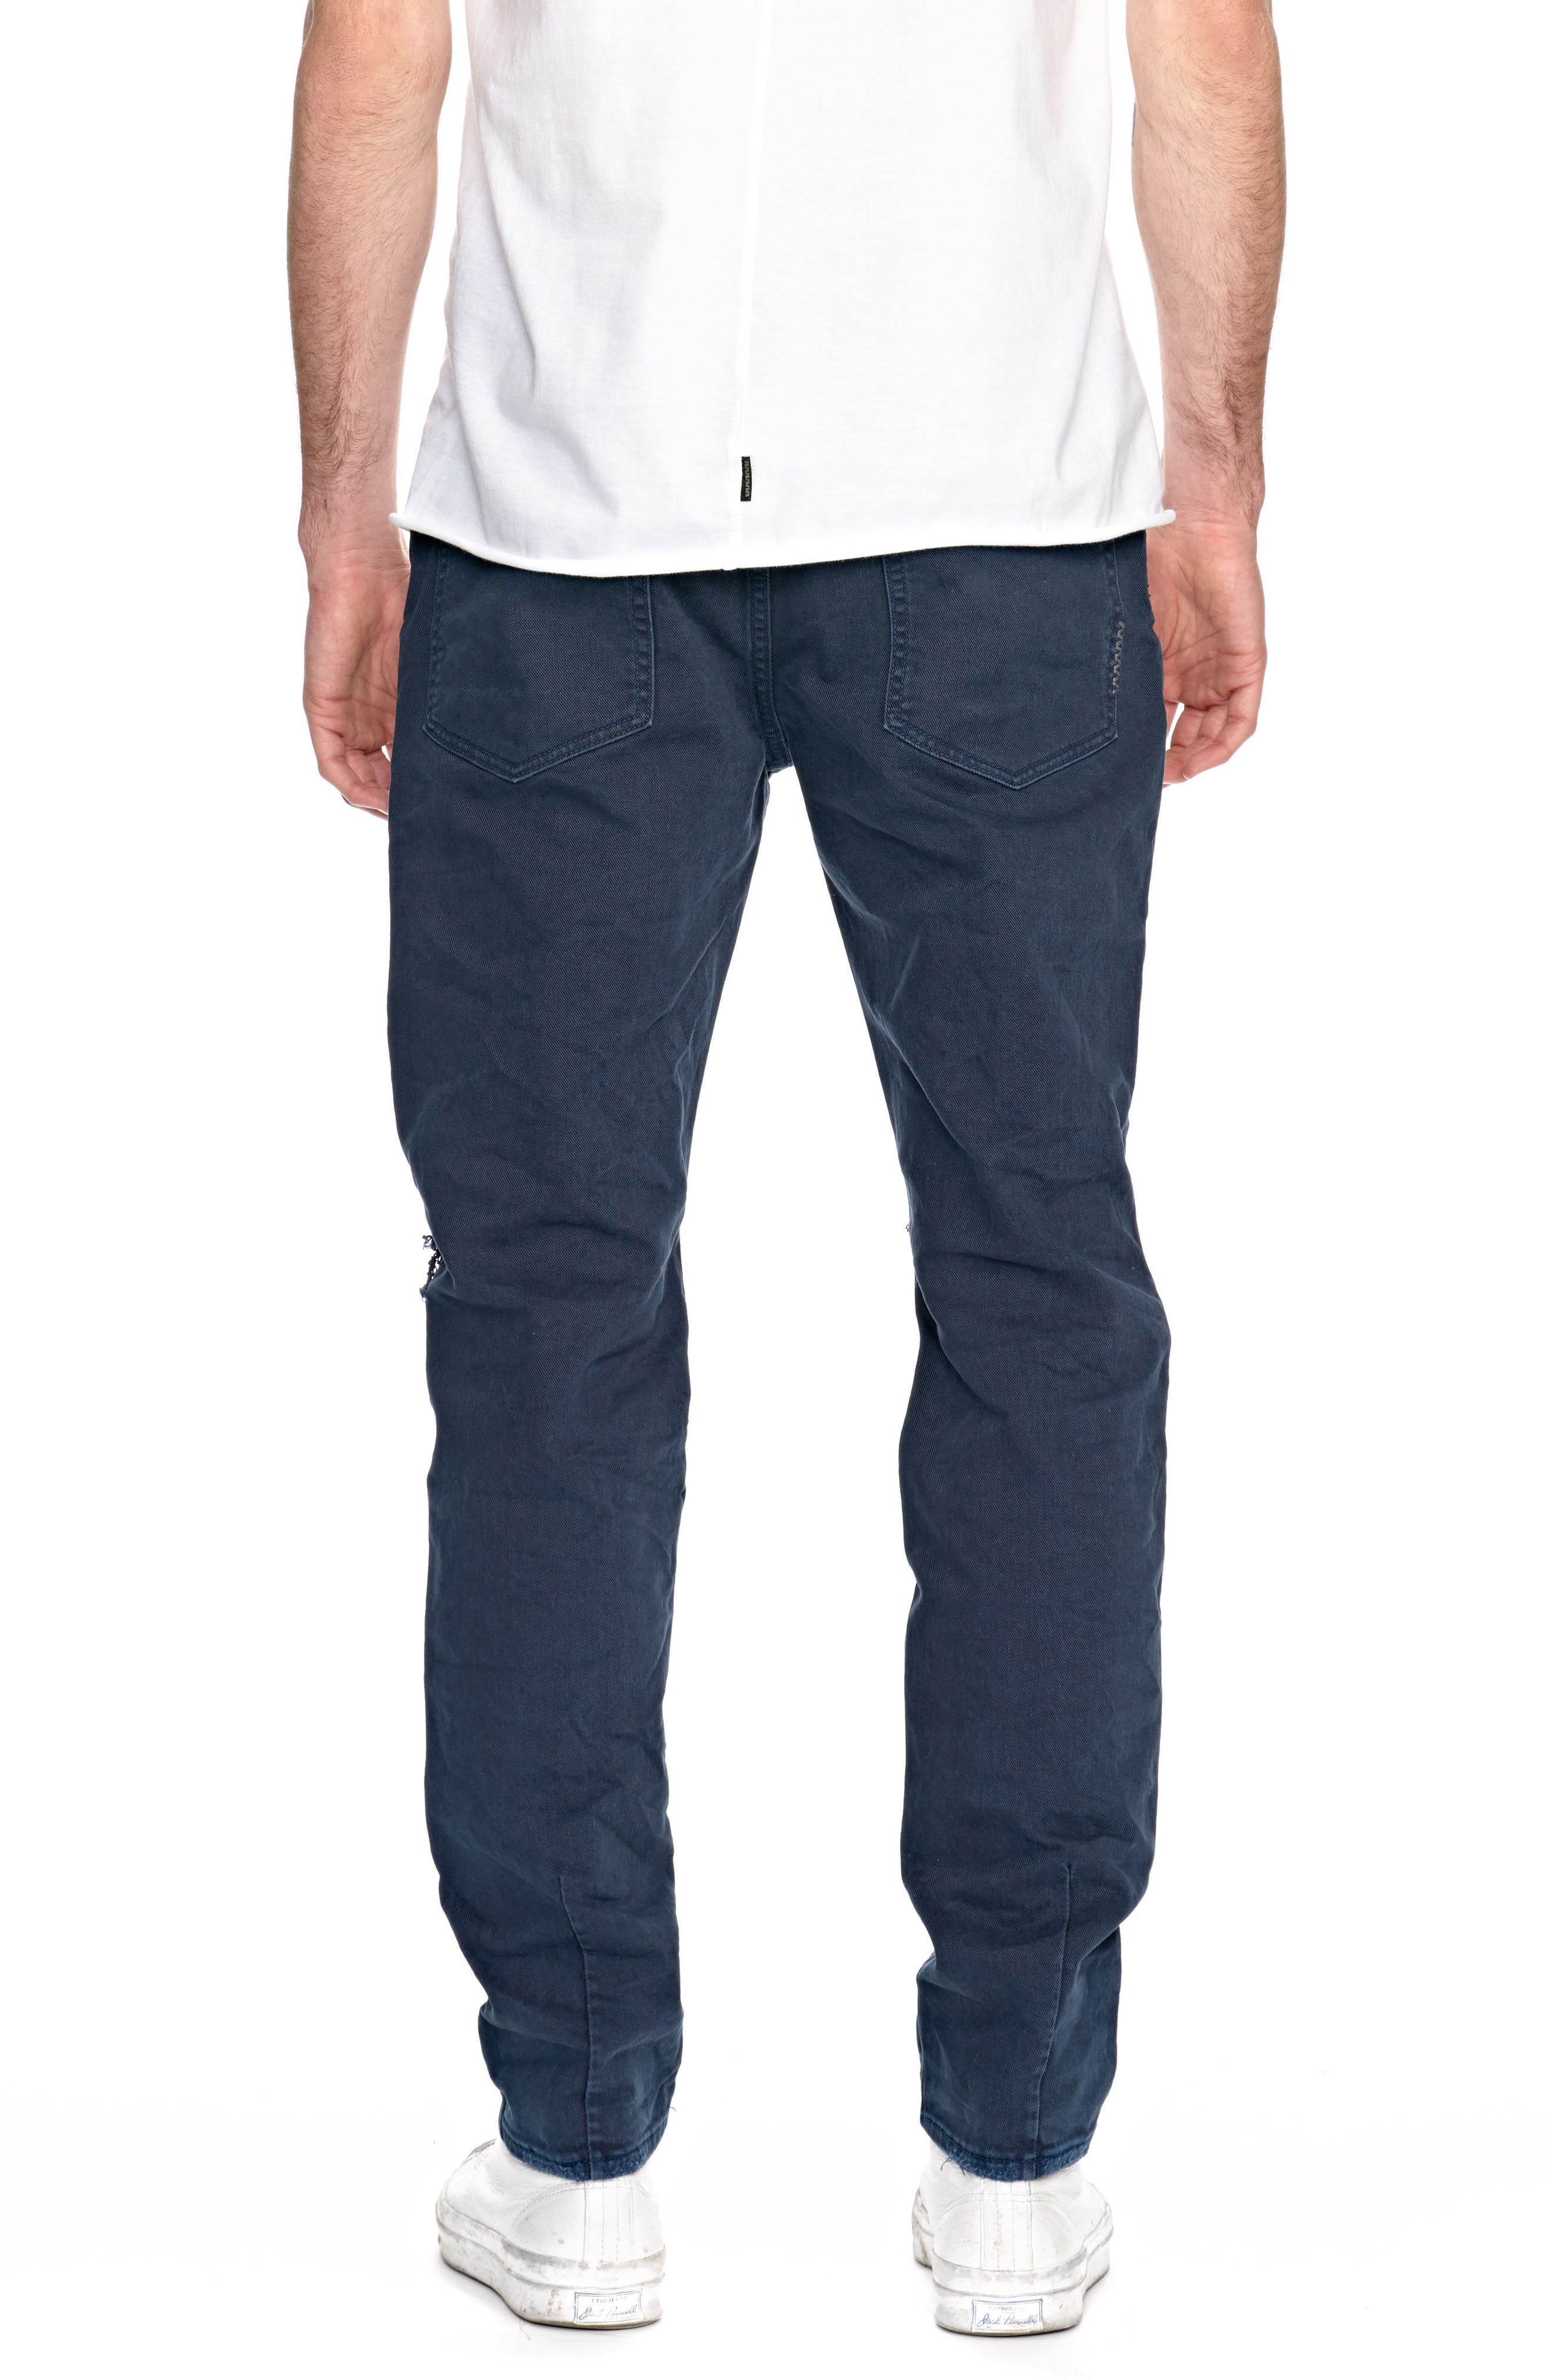 Ray Slouchy Slim Fit Jeans,                             Alternate thumbnail 2, color,                             Busted Navy